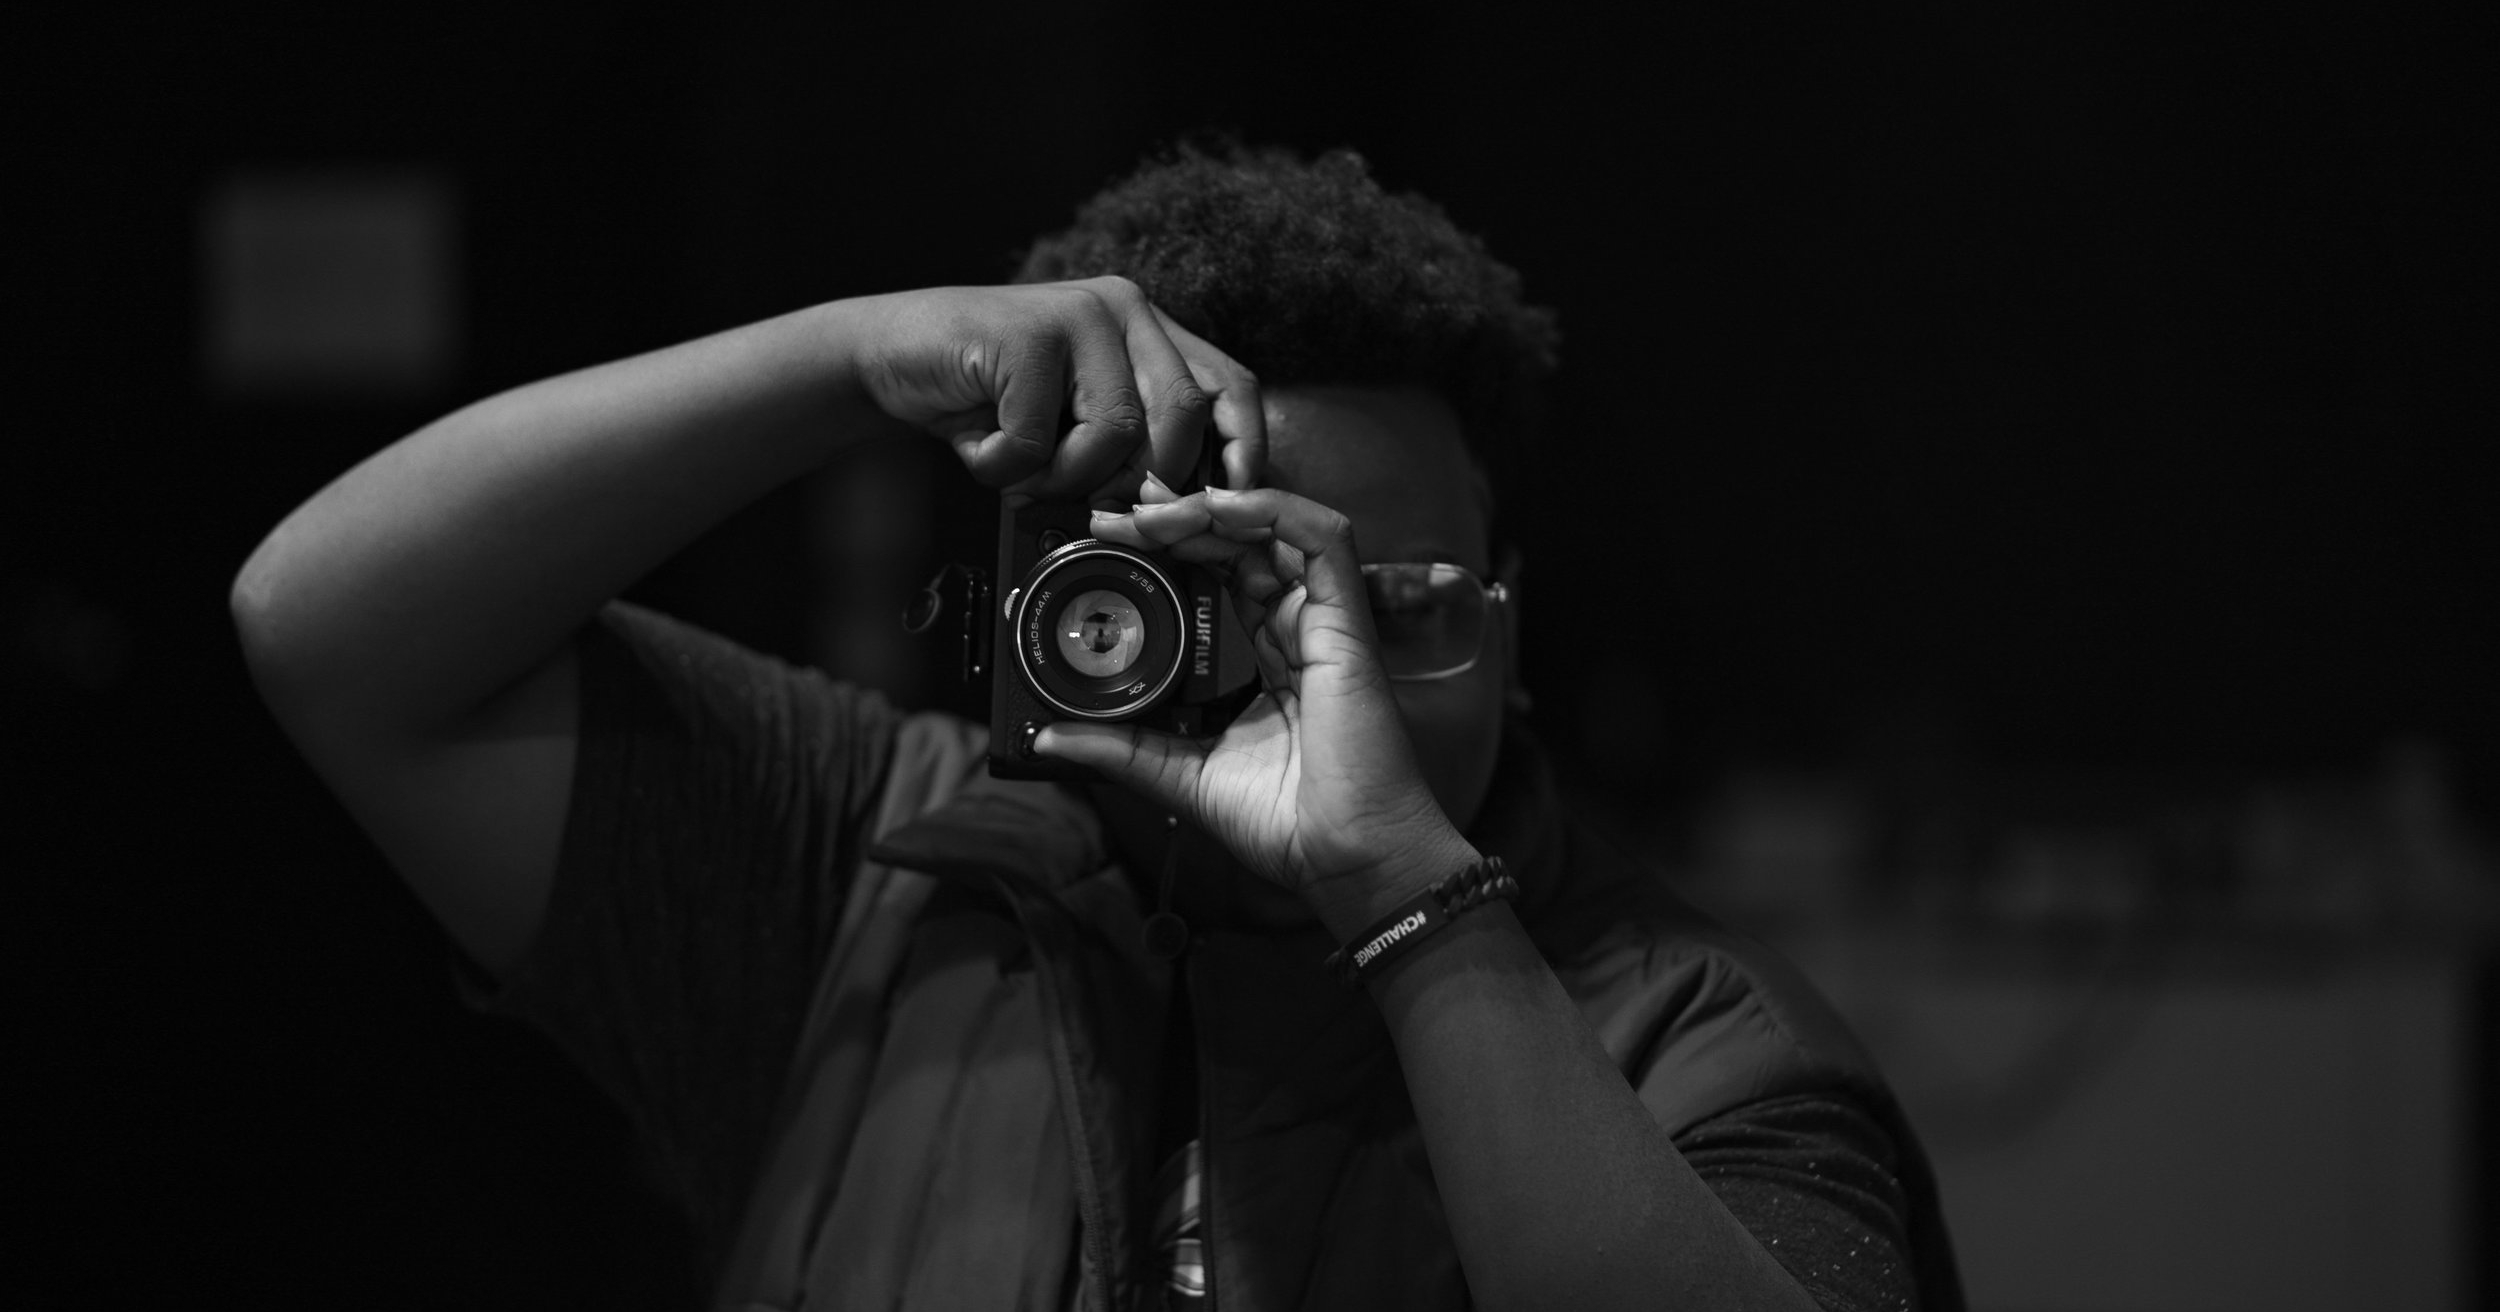 WIDE ANGLE HAS PROVIDED MEDIA ARTS EDUCATION TO OVER 5,000 YOUTH IN BALTIMORE. -